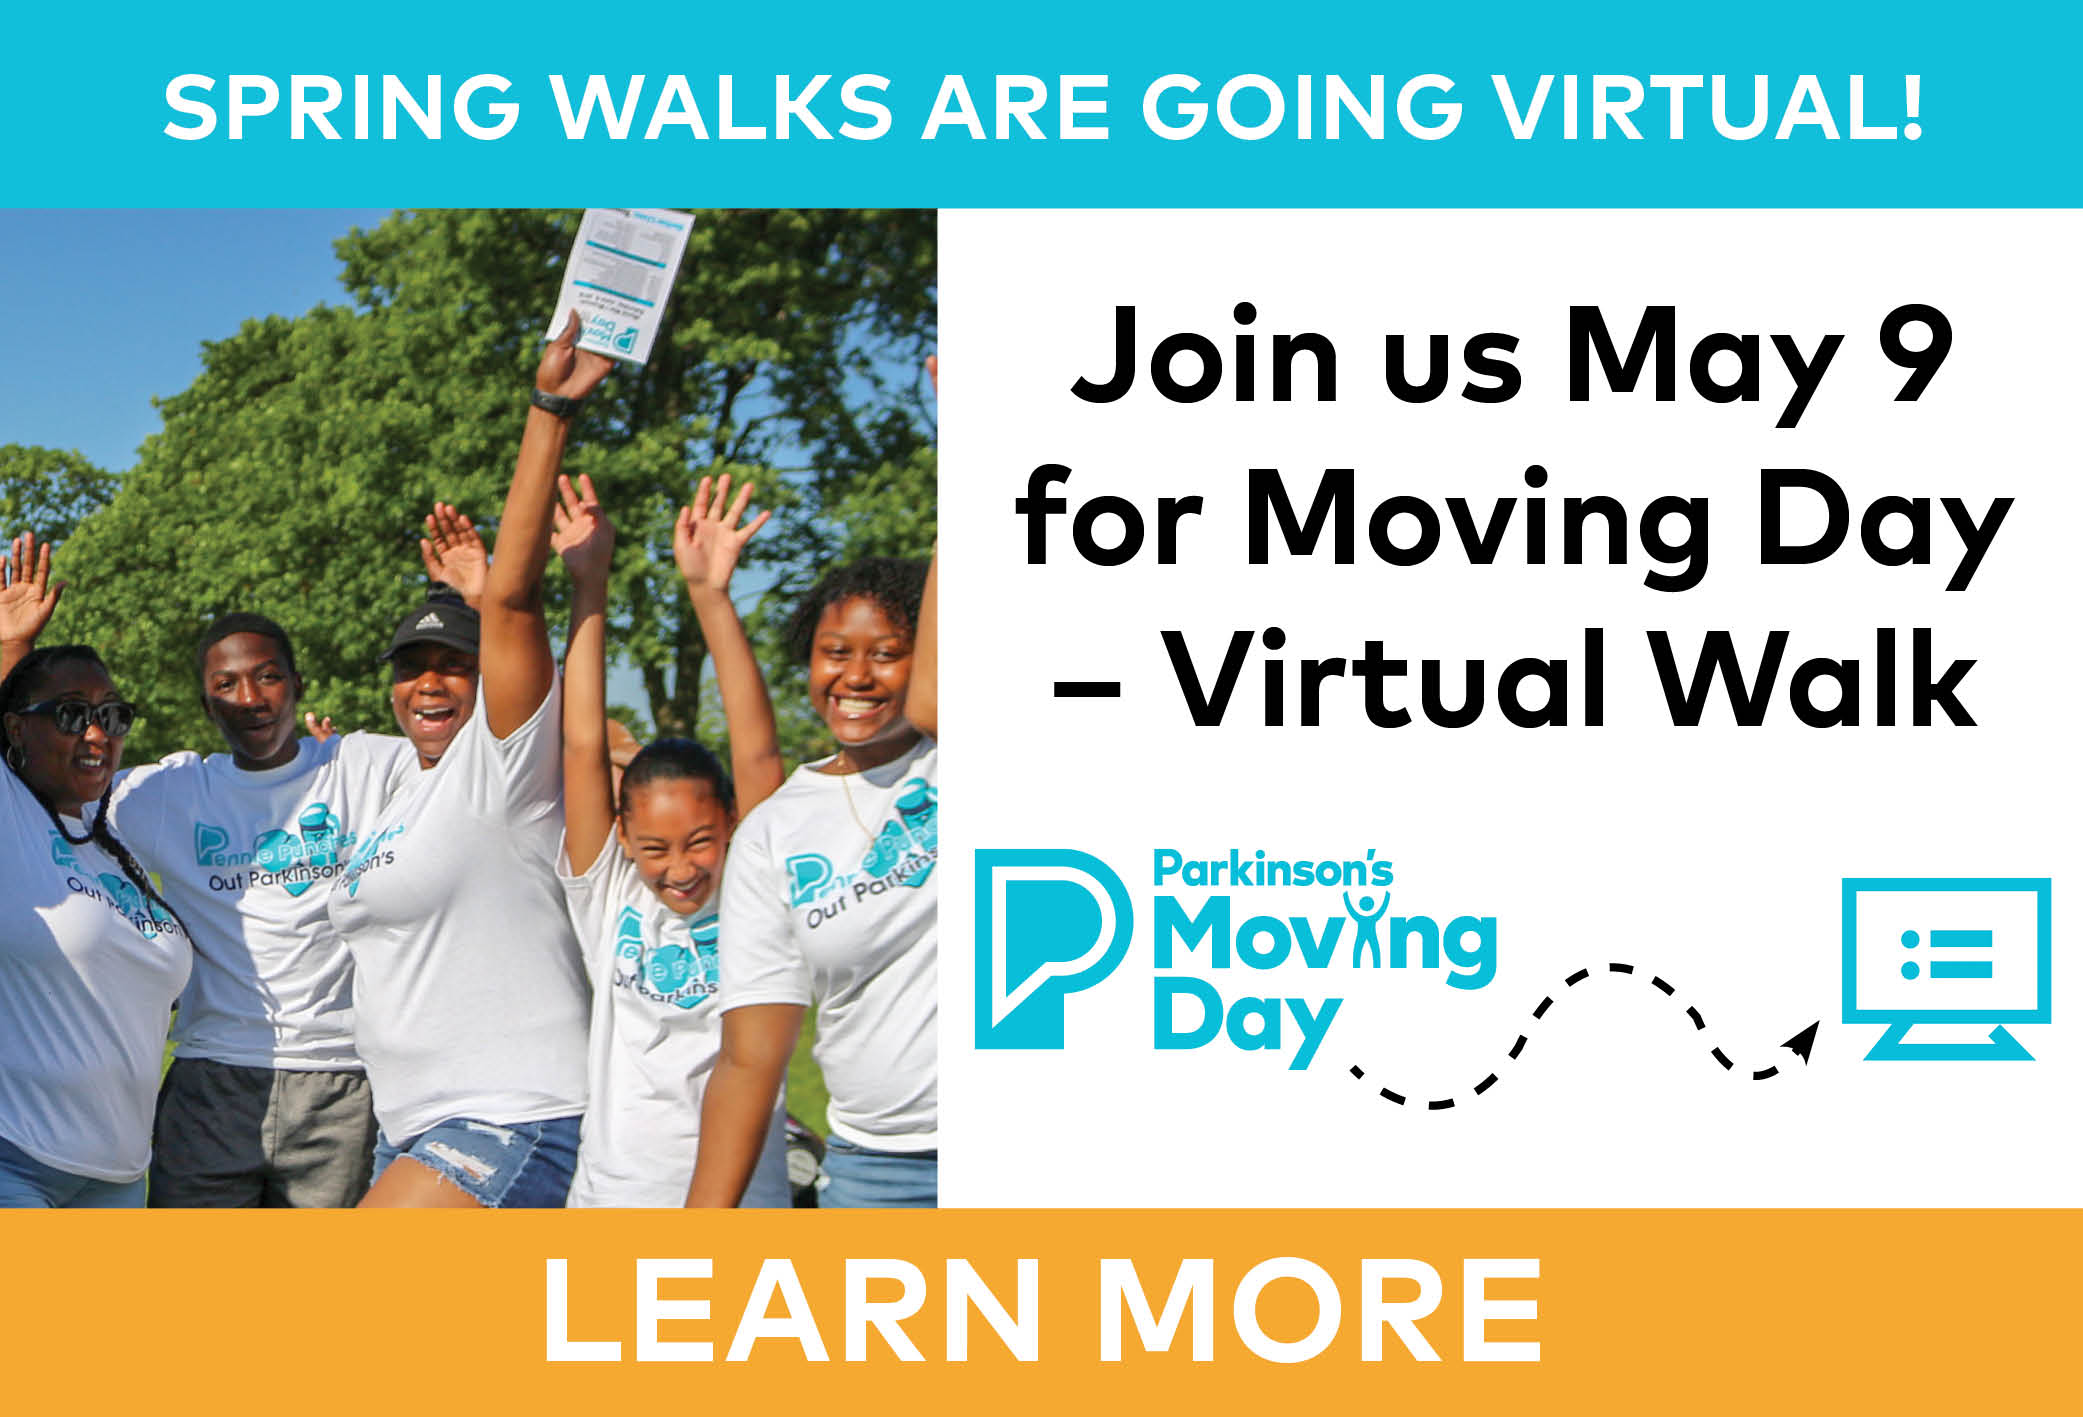 Spring walks are going virtual. Join us May 9 for Moving Day - Virtual Walk.